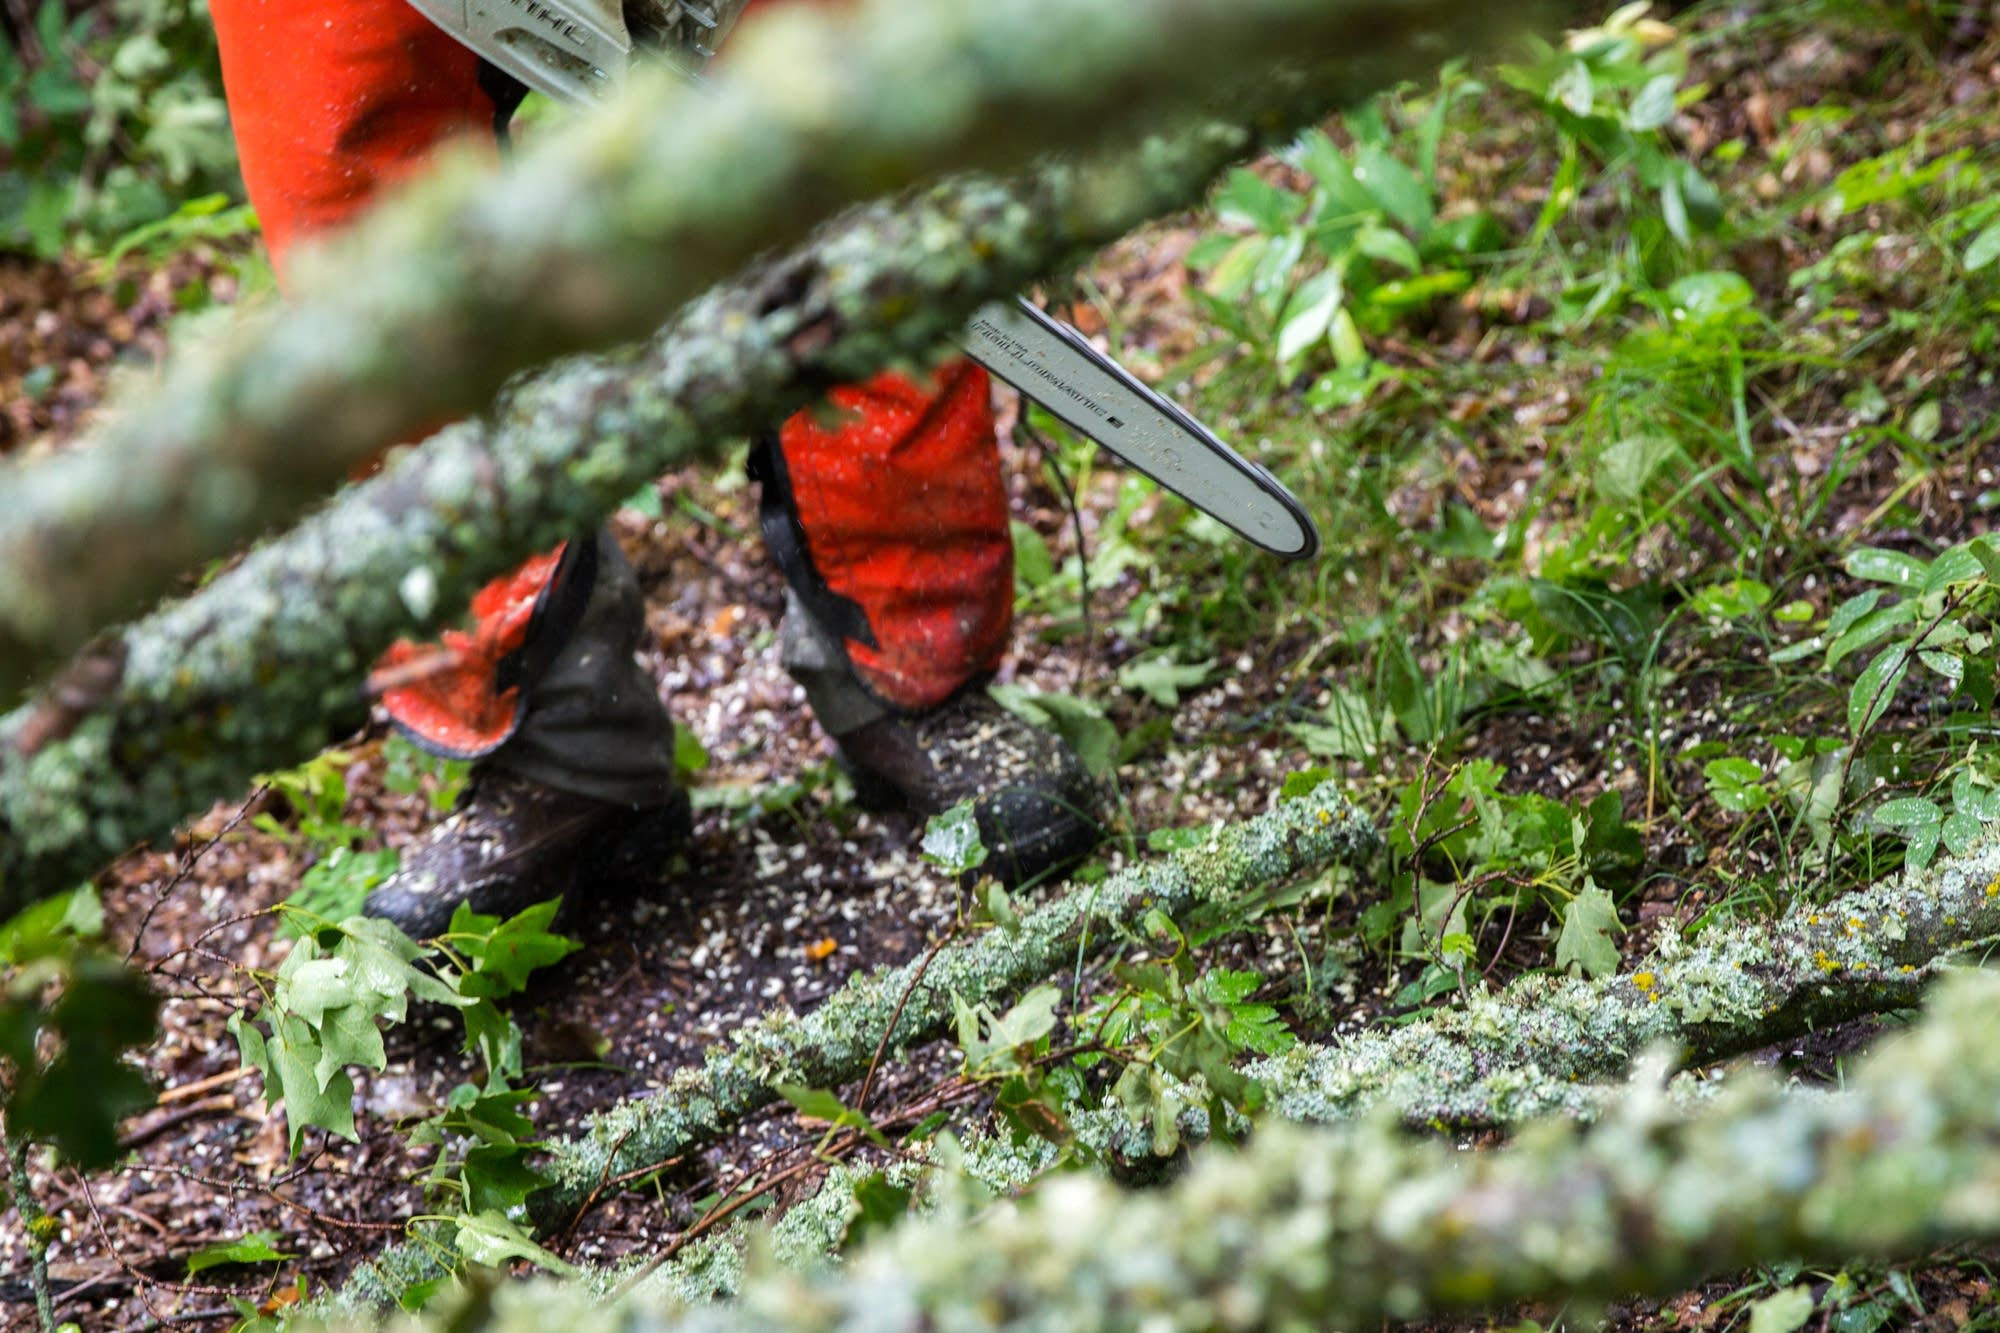 Chainsaws are used to clear the trail